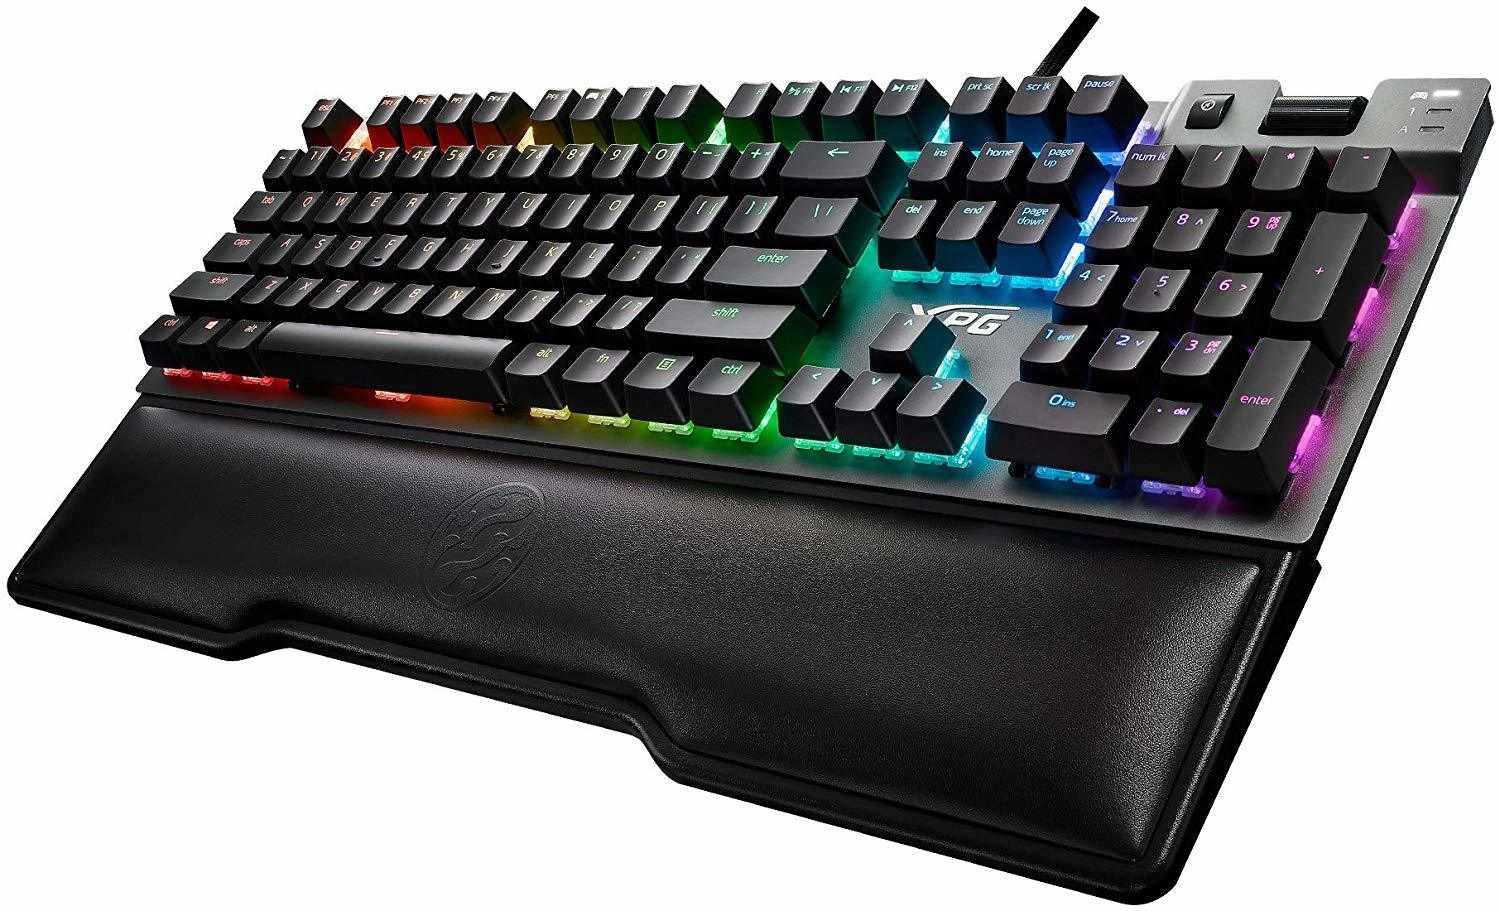 XPG Summoner RGB Gaming Mechanical Keyboard - Cherry MX RGB Blue - PC Games